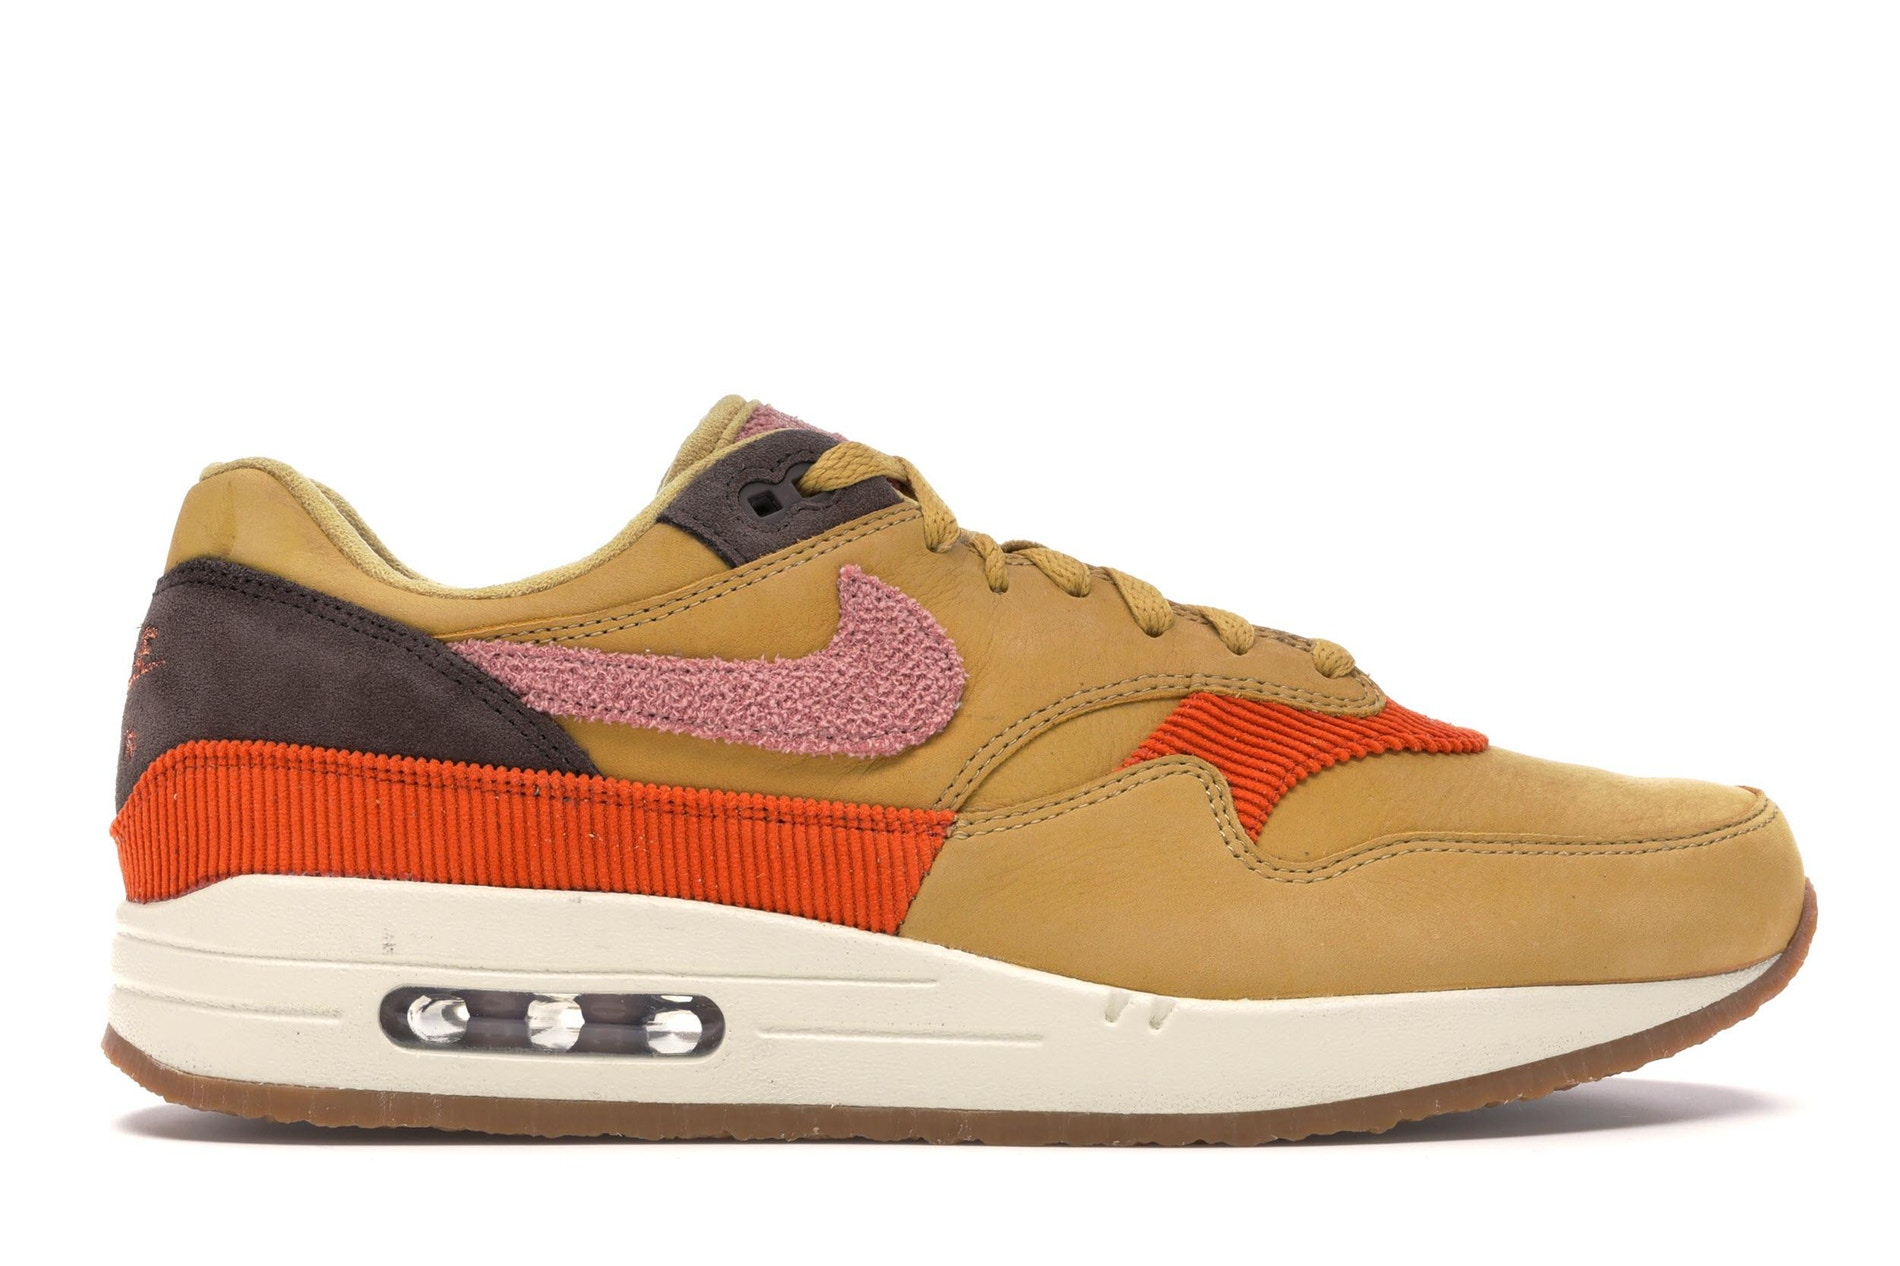 Air Max 1 Crepe Wheat Gold Rust Pink